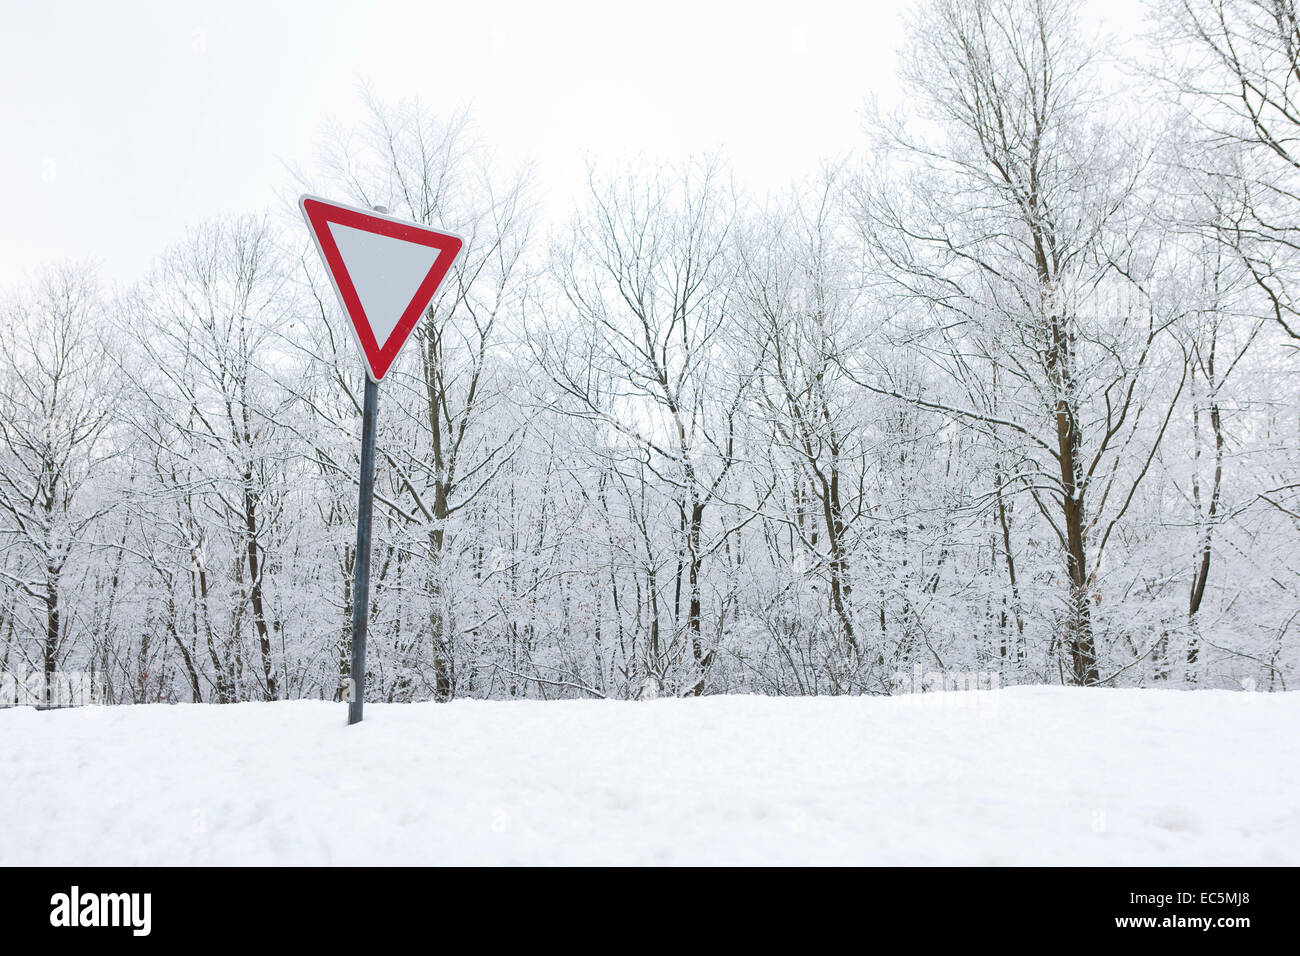 Right of way - Stock Image